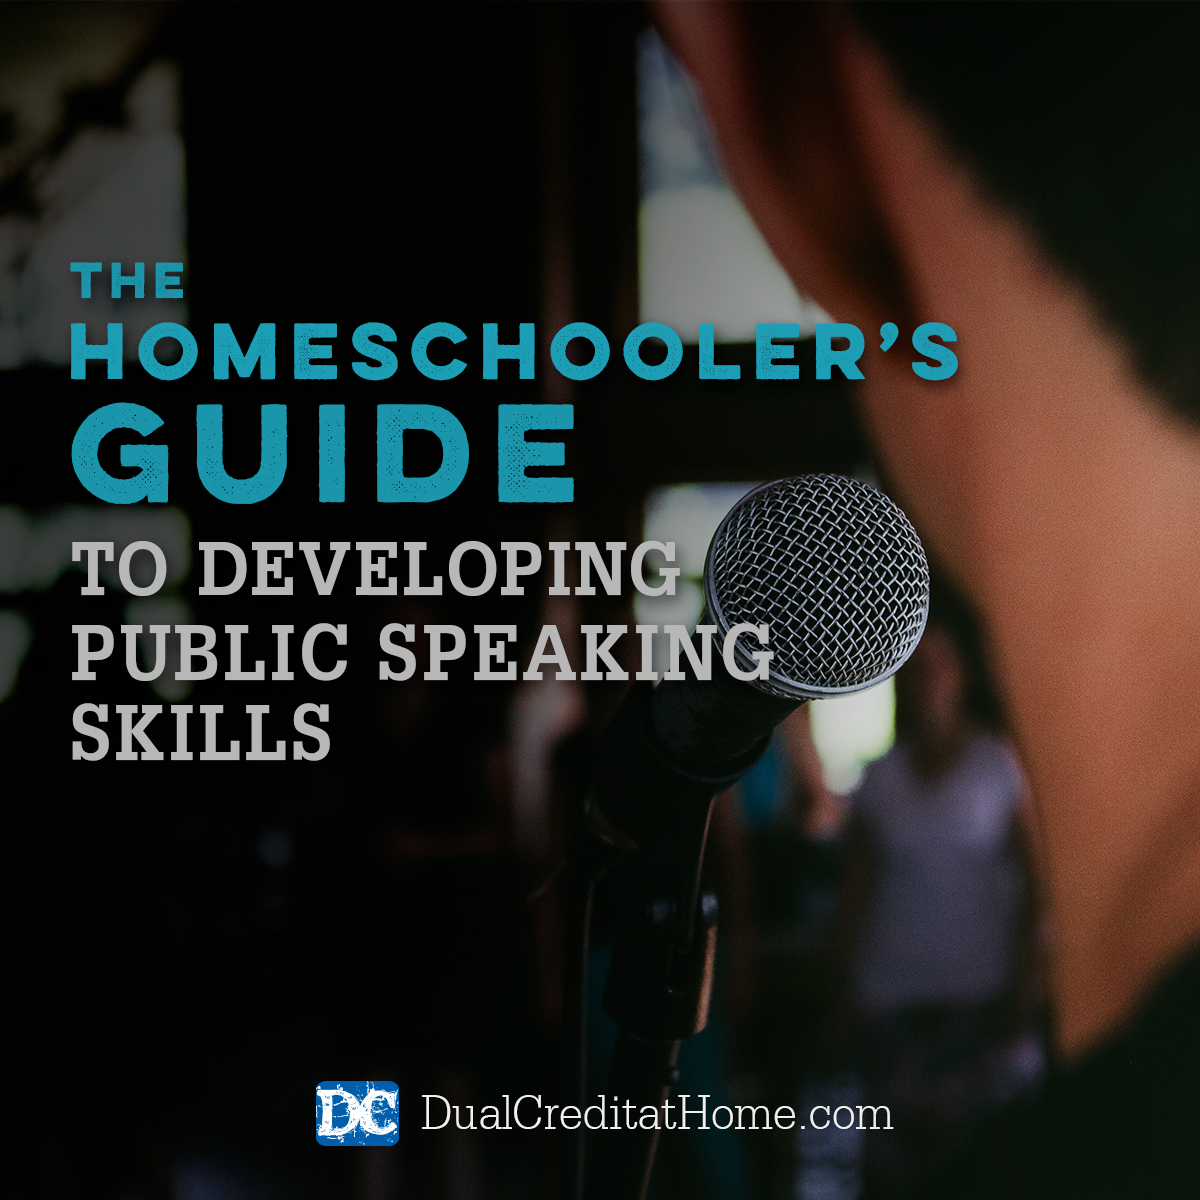 The Homeschooler's Guide to Developing Public Speaking Skills